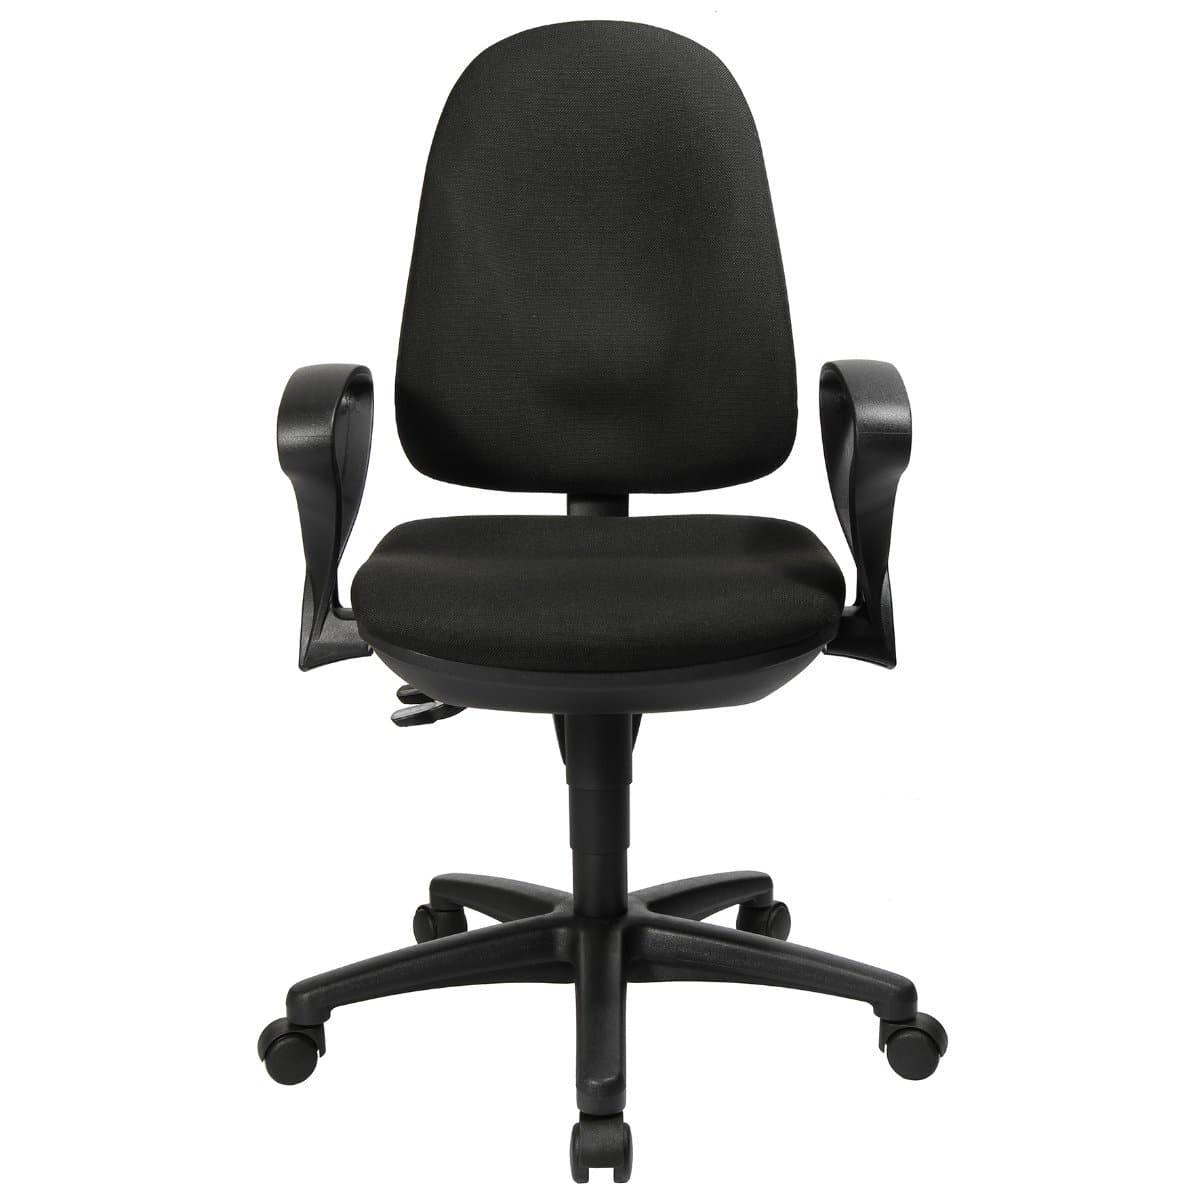 Topstar POINT 30 Secretary Office Chair, Fabric Black